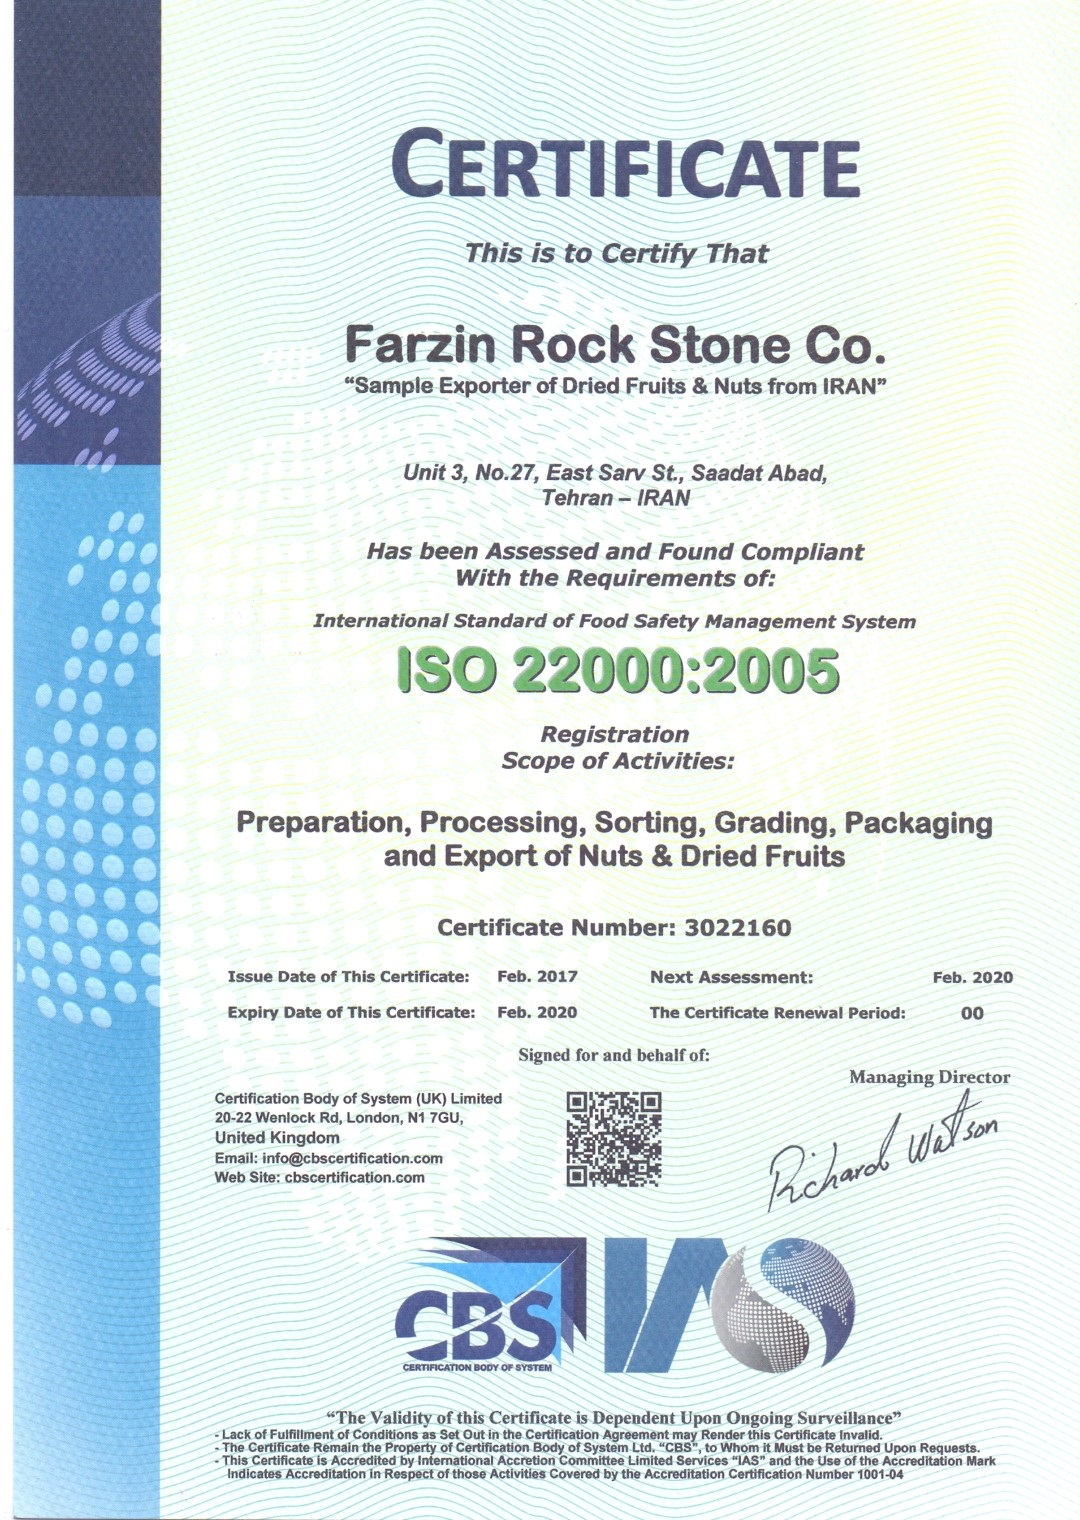 iso 22000 : 2005 Certificate